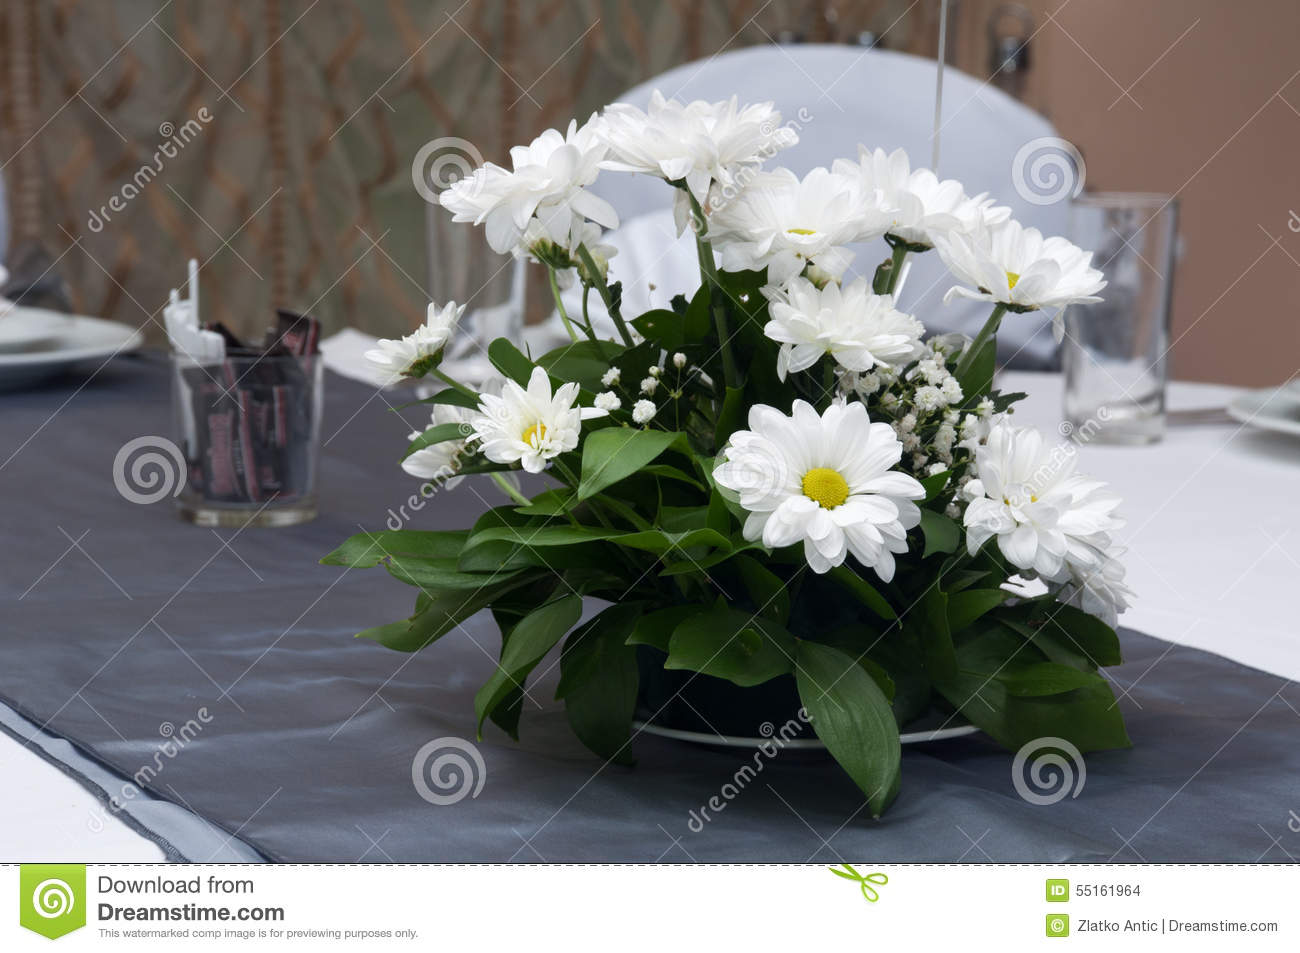 Composition florale sur la table de mariage photo stock for Composition florale table